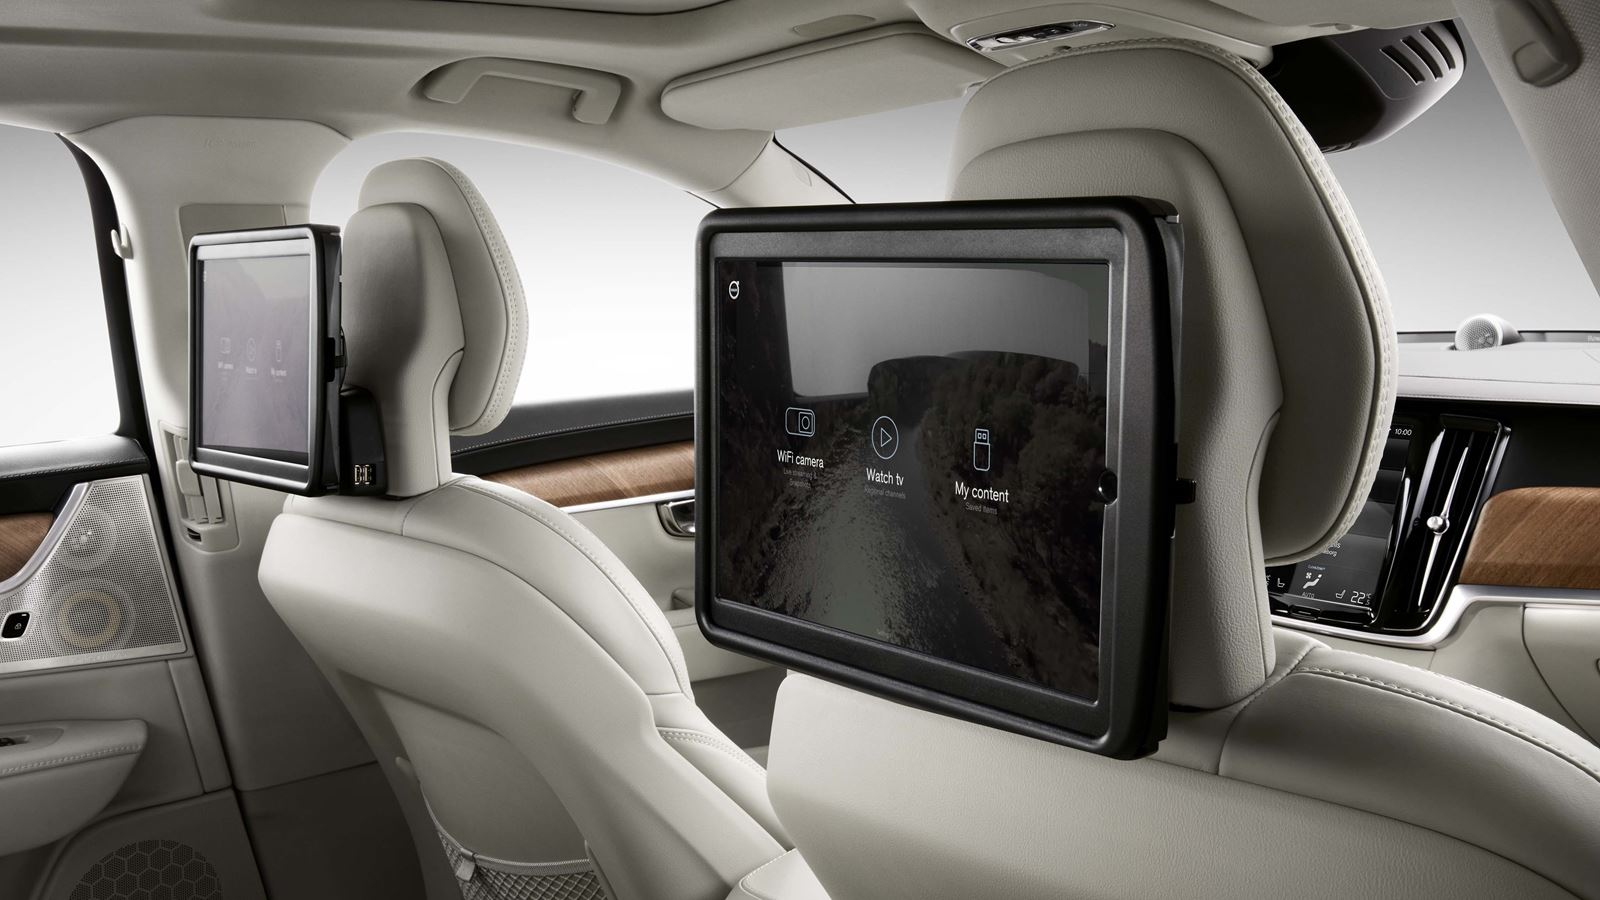 2018 Volvo S90 rear entertainment